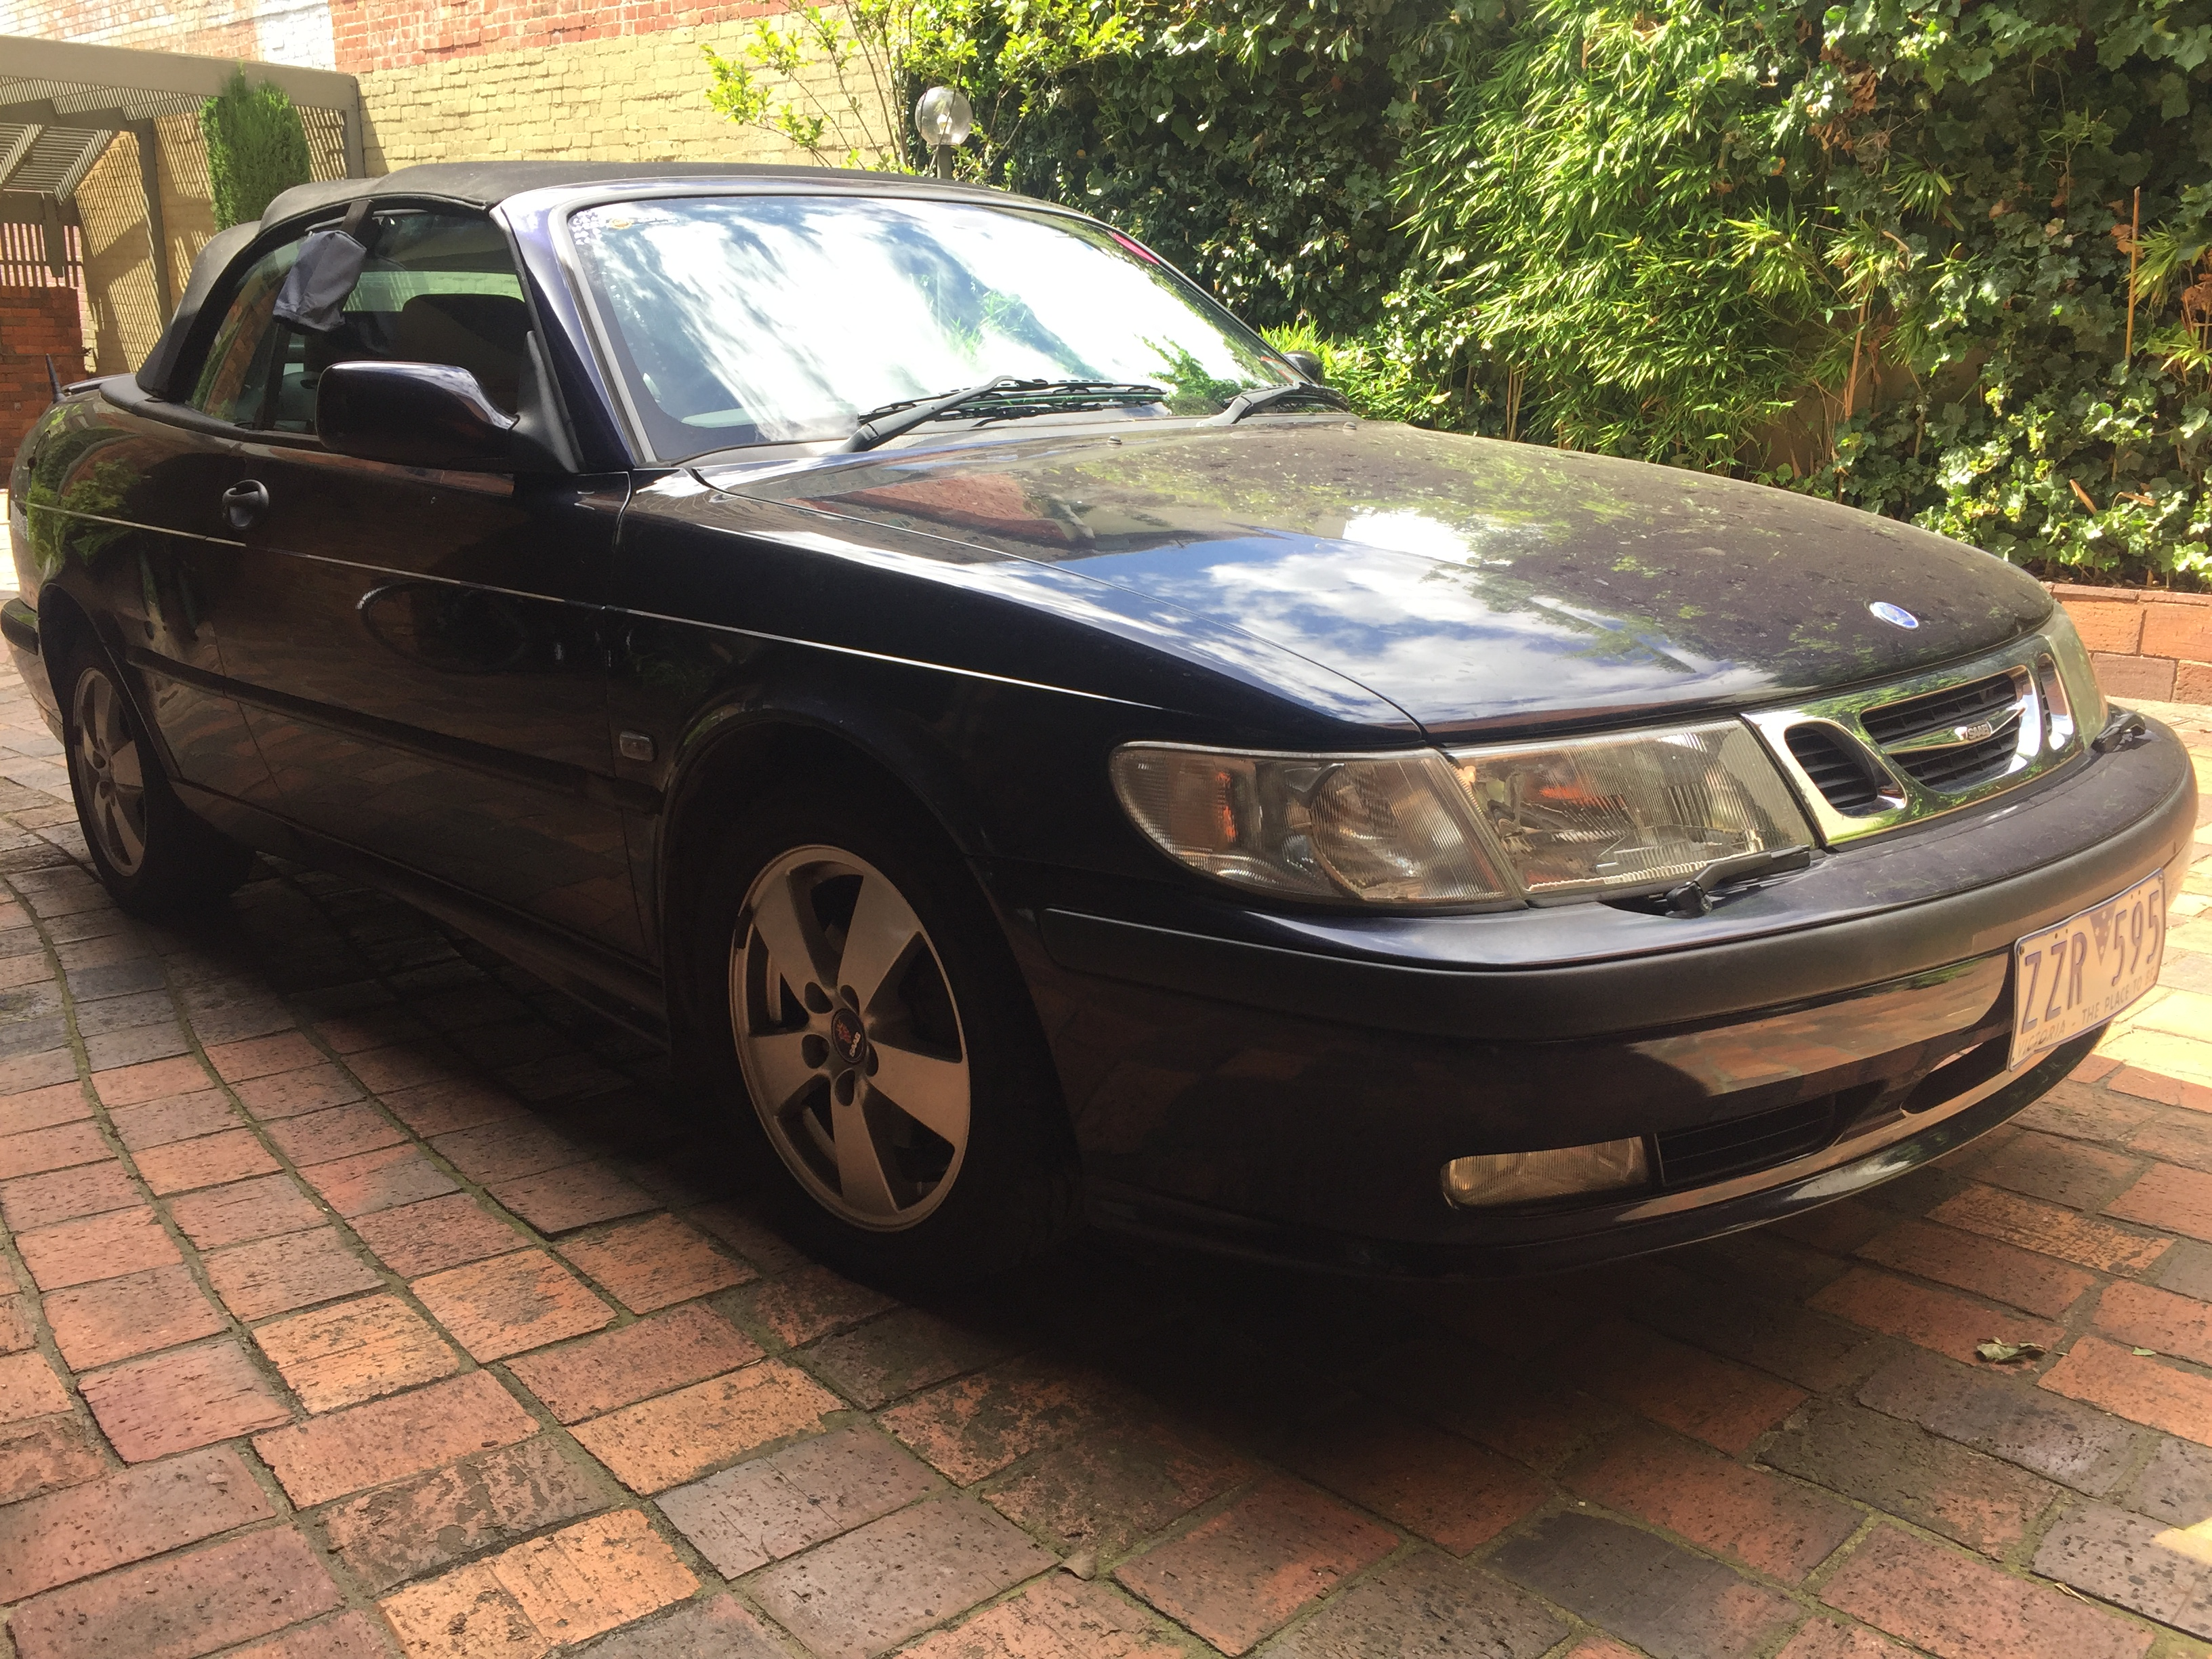 Picture of Glen's 2003 Saab Coupe 9-3 Turbo